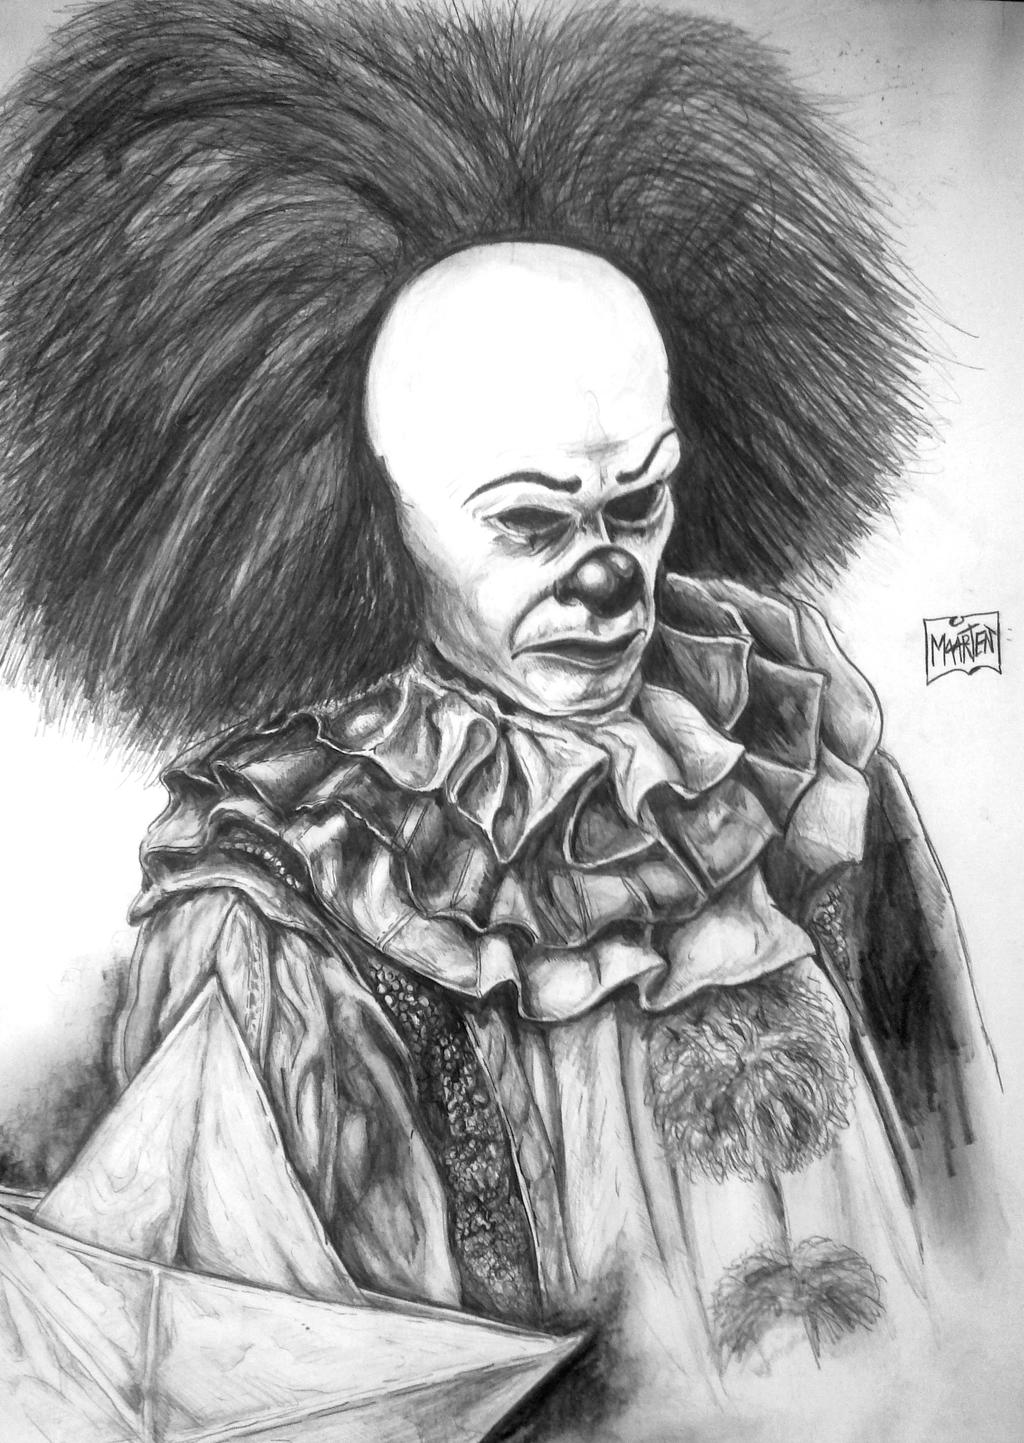 Pennywise the Clown IT by Xpendable on DeviantArt